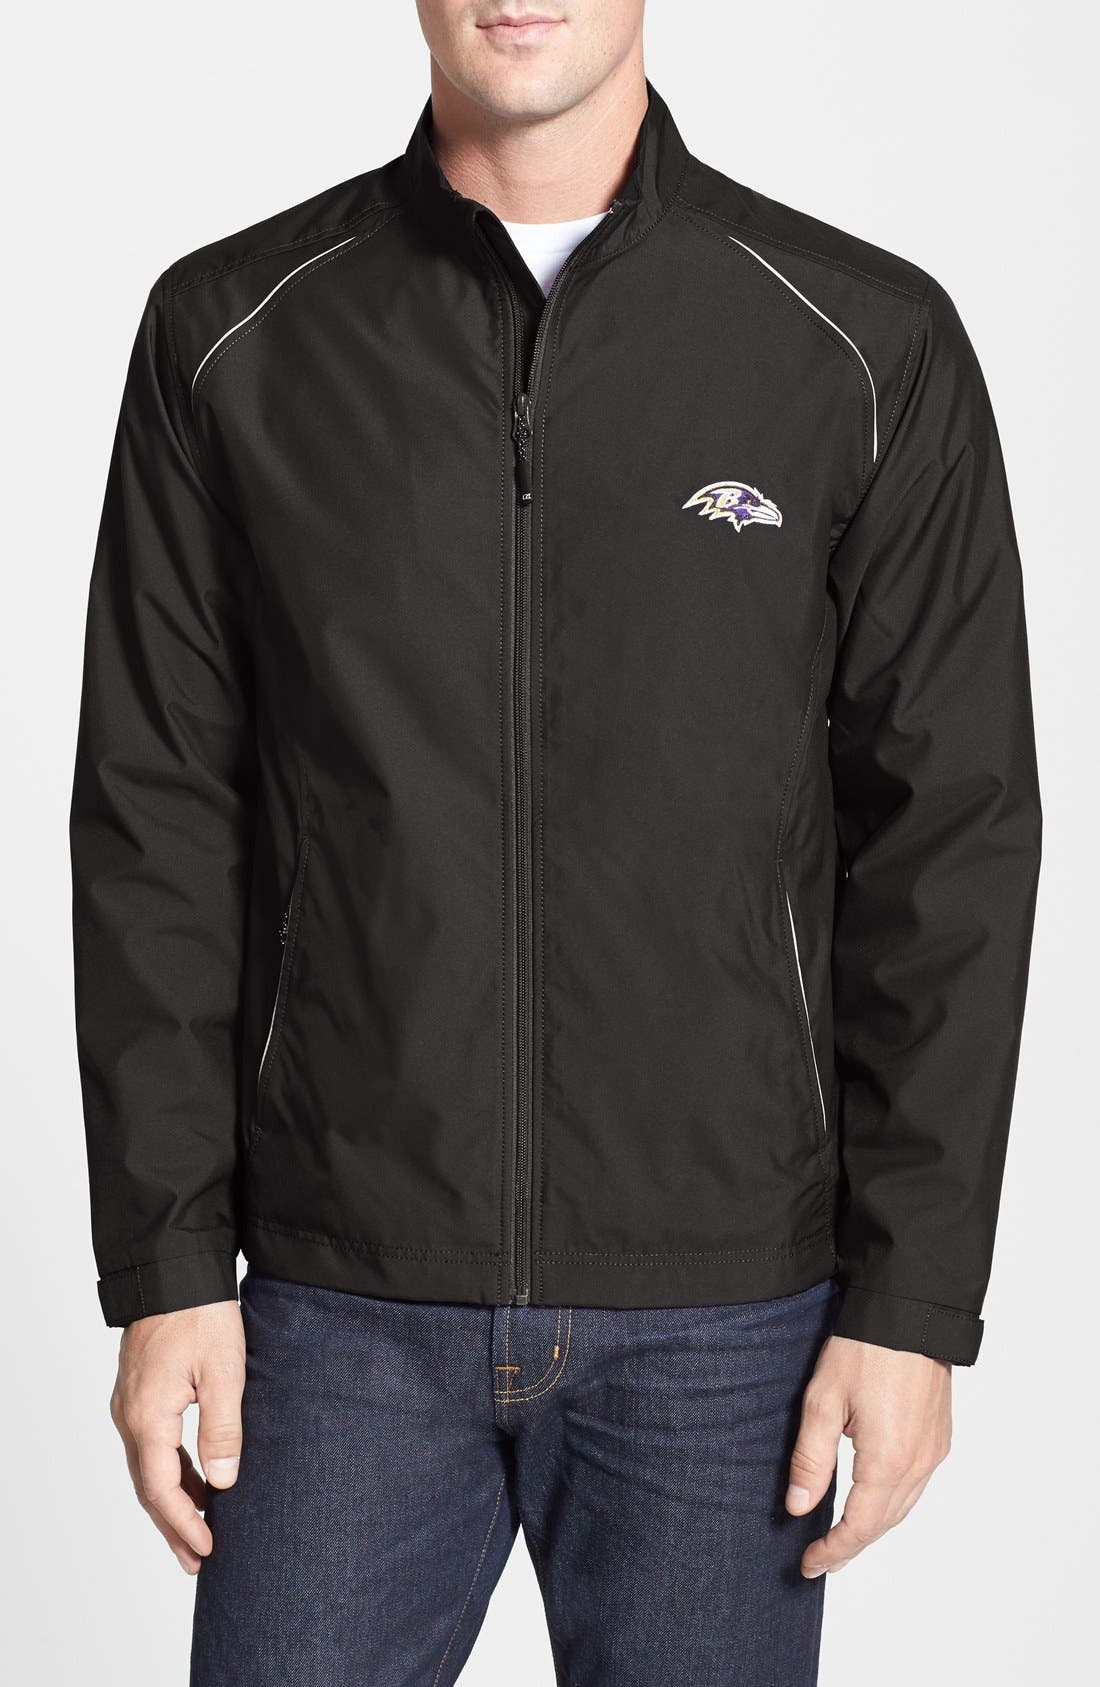 Alternate Image 1 Selected - Cutter & Buck Baltimore Ravens - Beacon WeatherTec Wind & Water Resistant Jacket